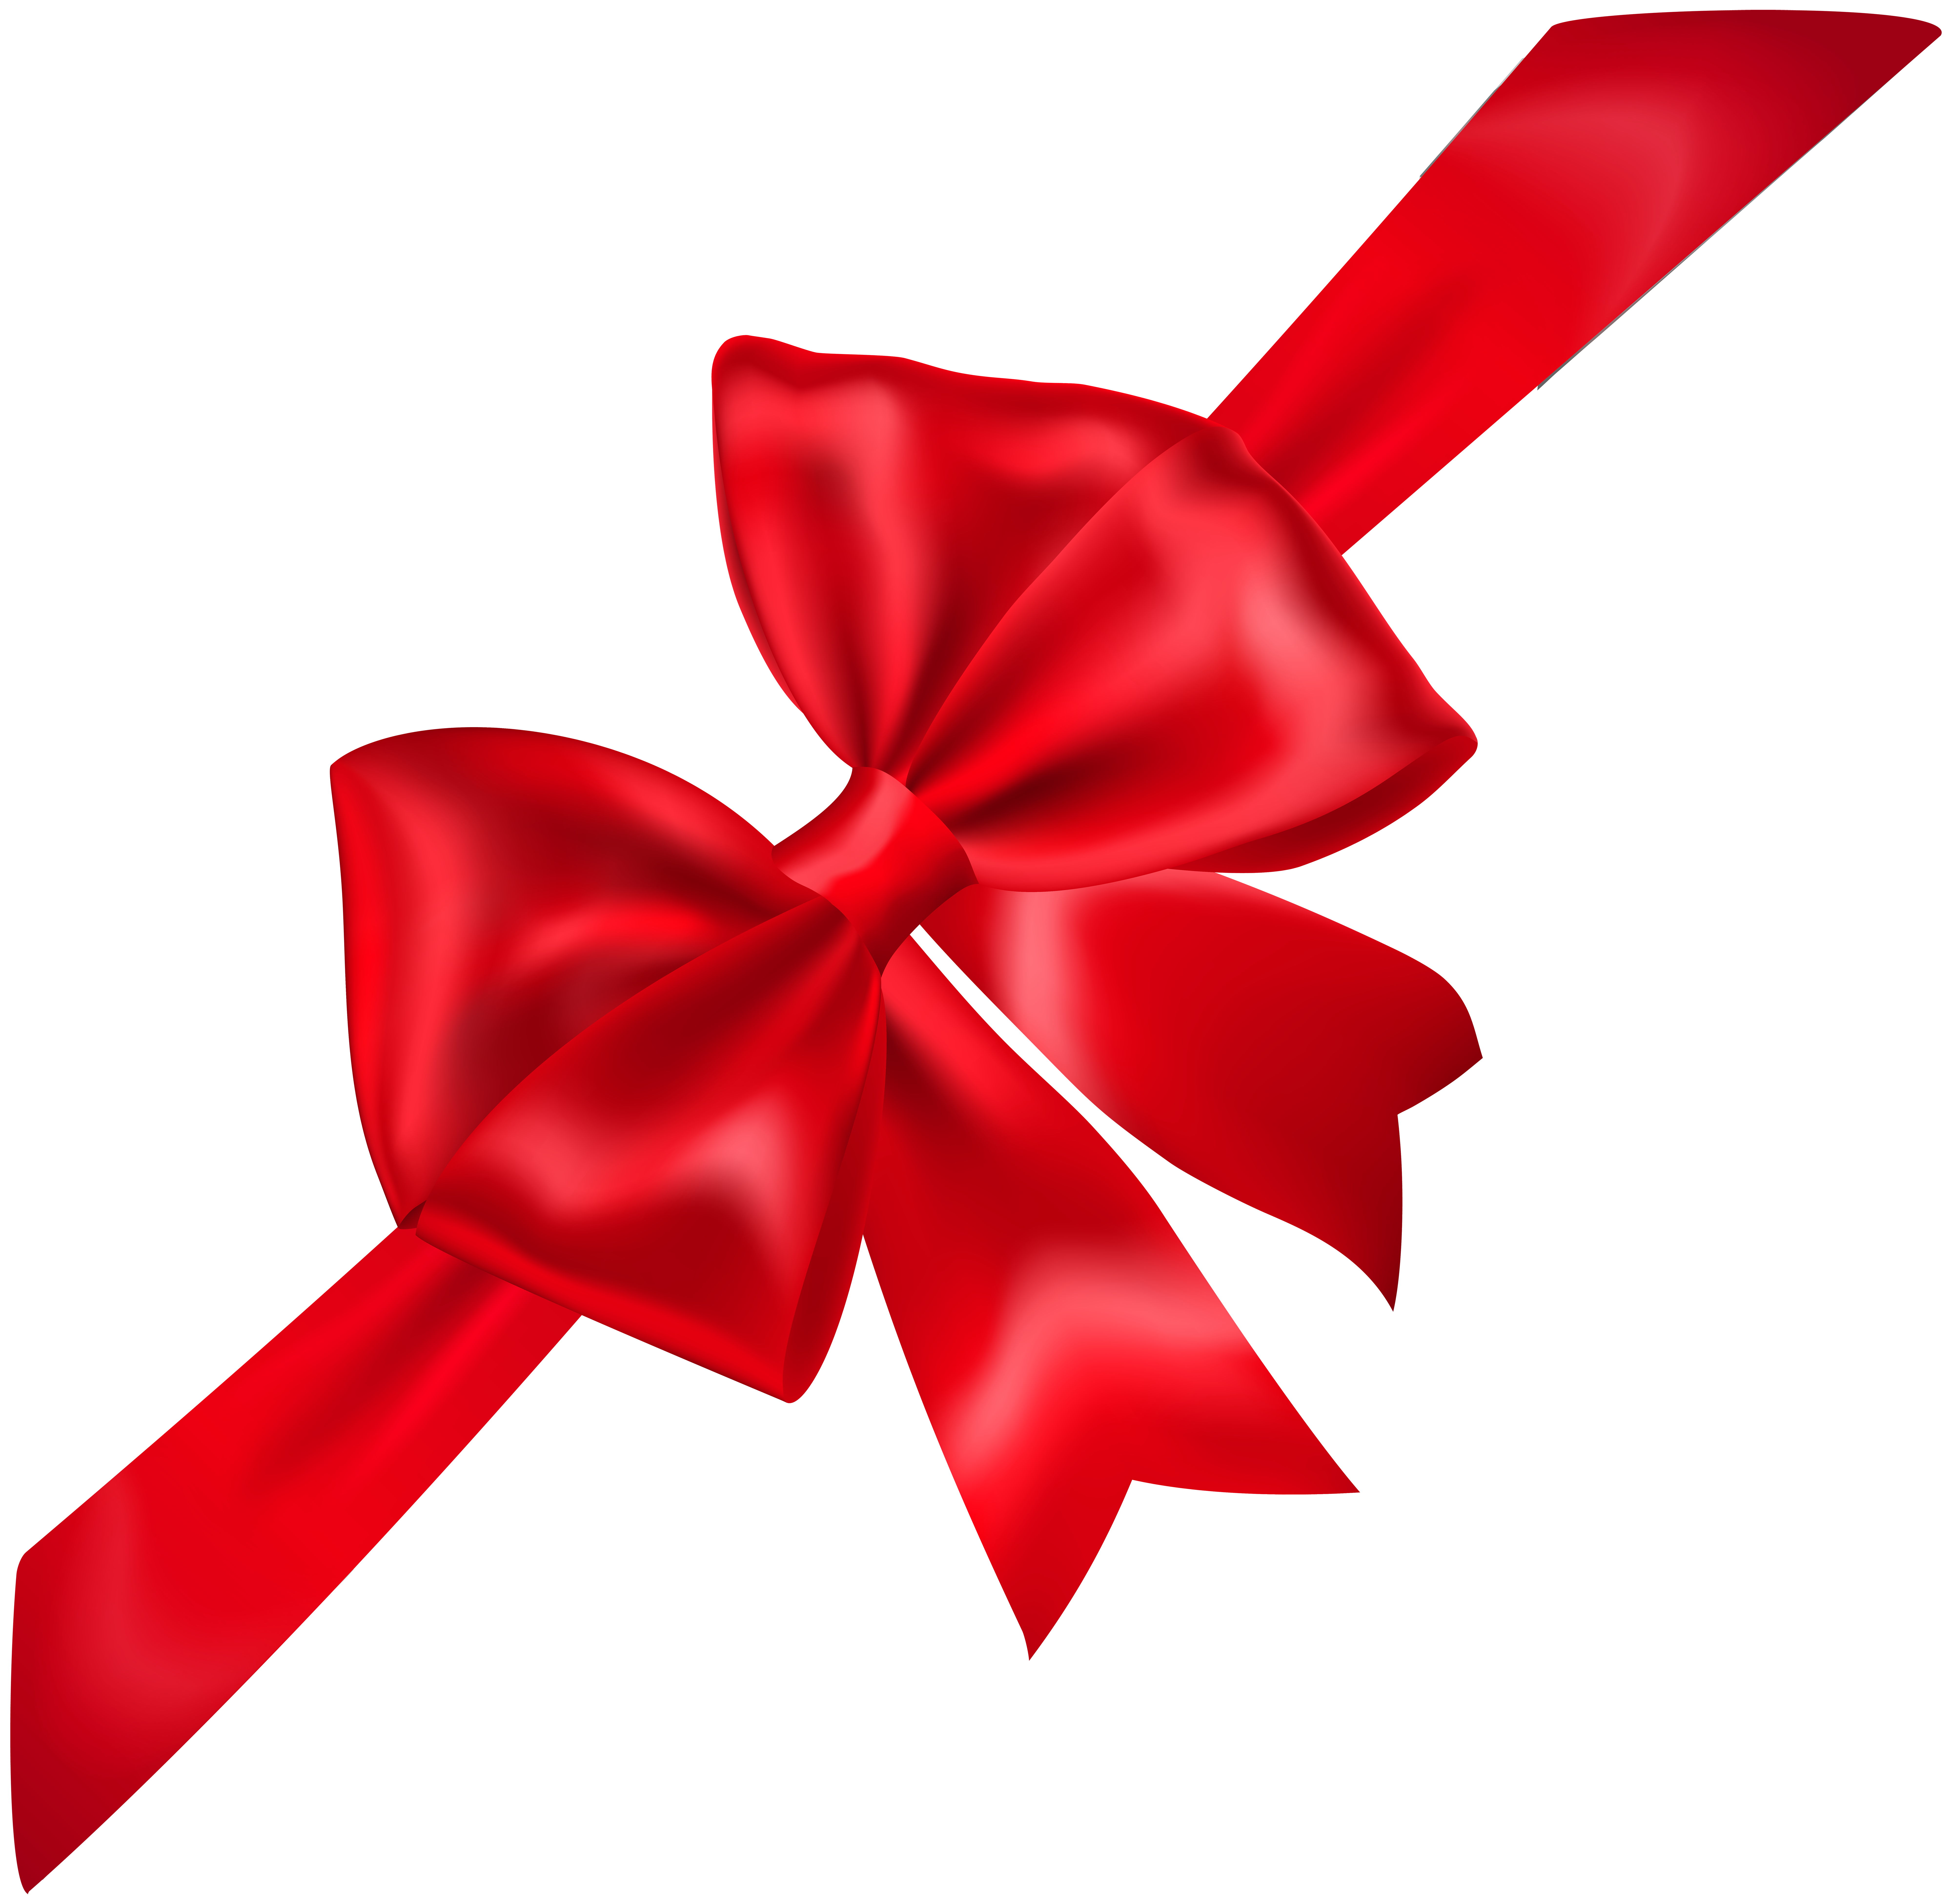 Red Bow Transparent PNG Image.